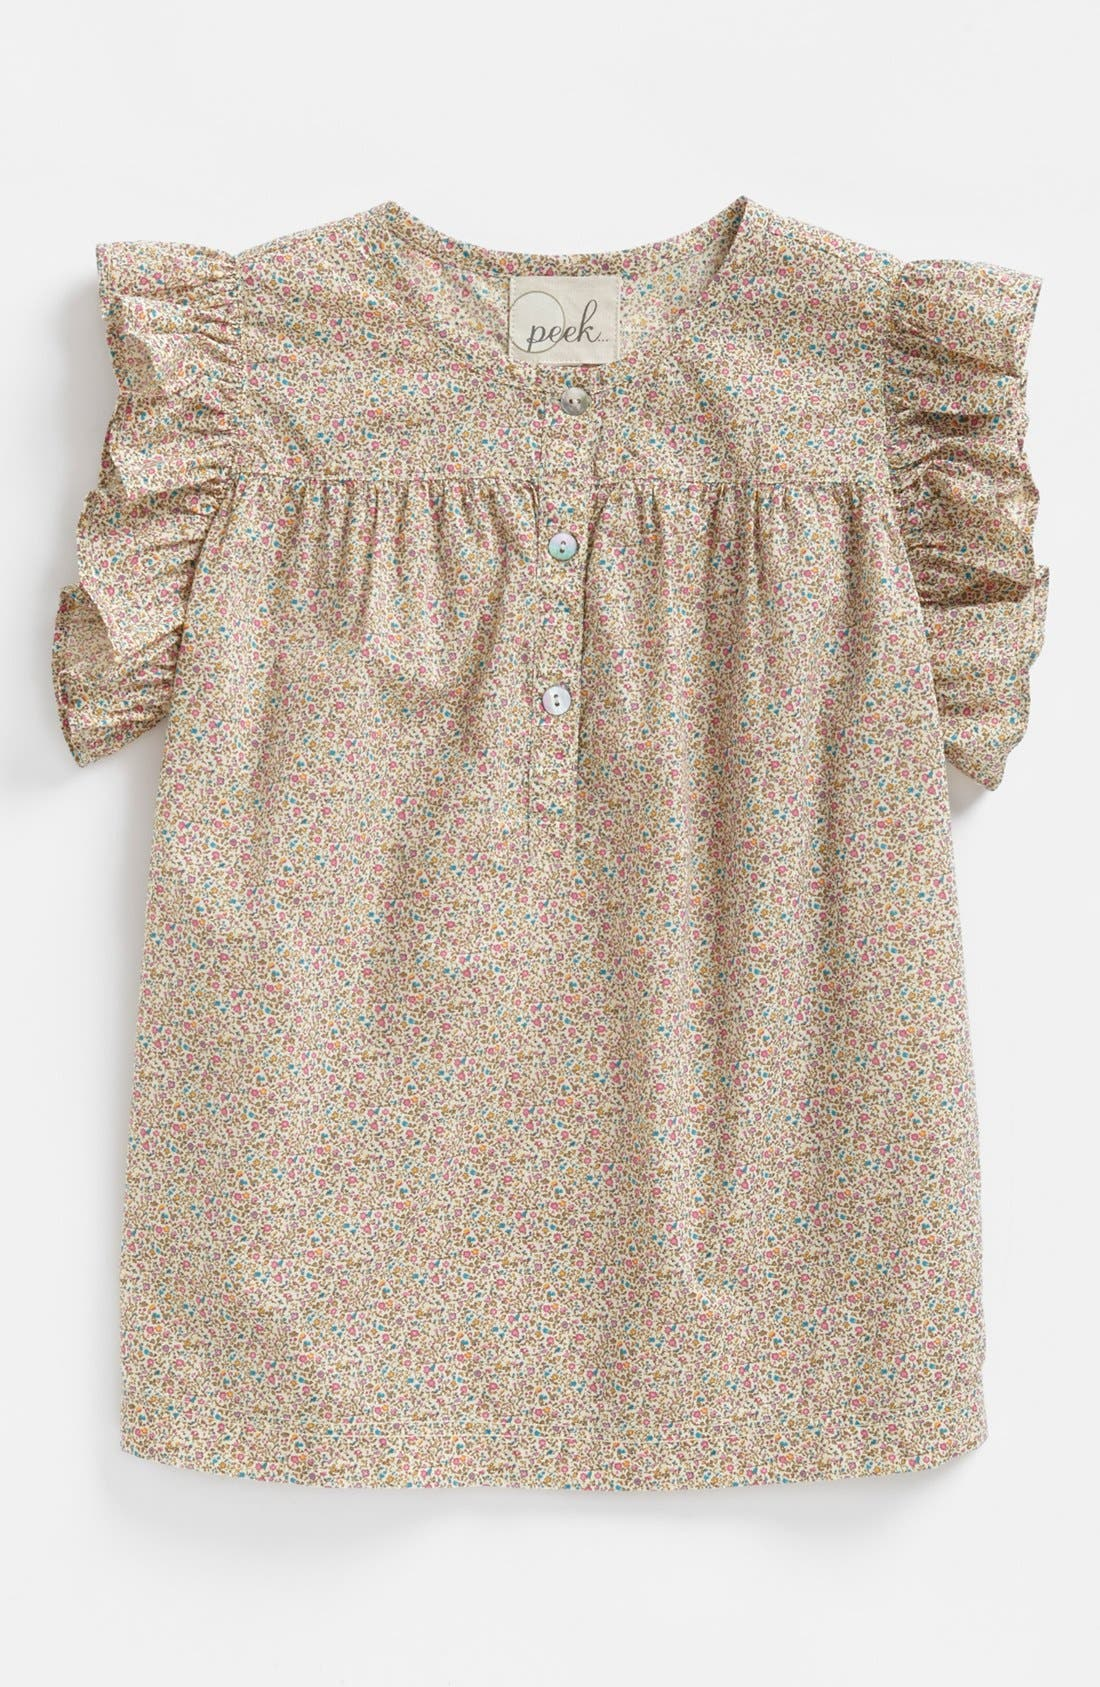 Alternate Image 1 Selected - Peek 'Rachel' Tunic Top (Big Girls)